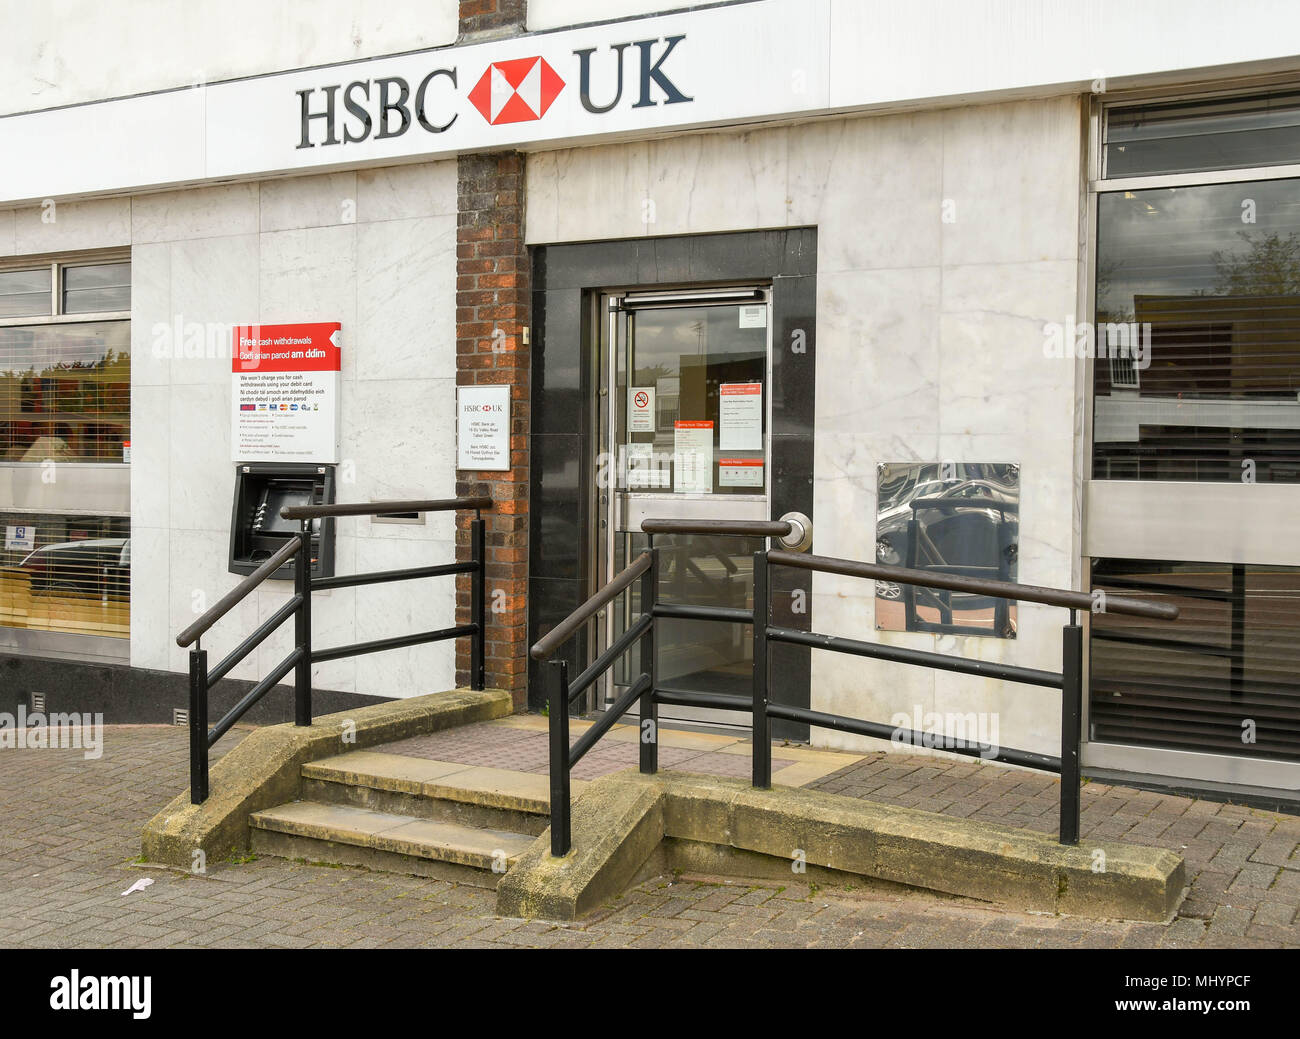 Exterior of a branch of HSBC Bank showing a ramp installed to provide easy access for disabled persons - Stock Image